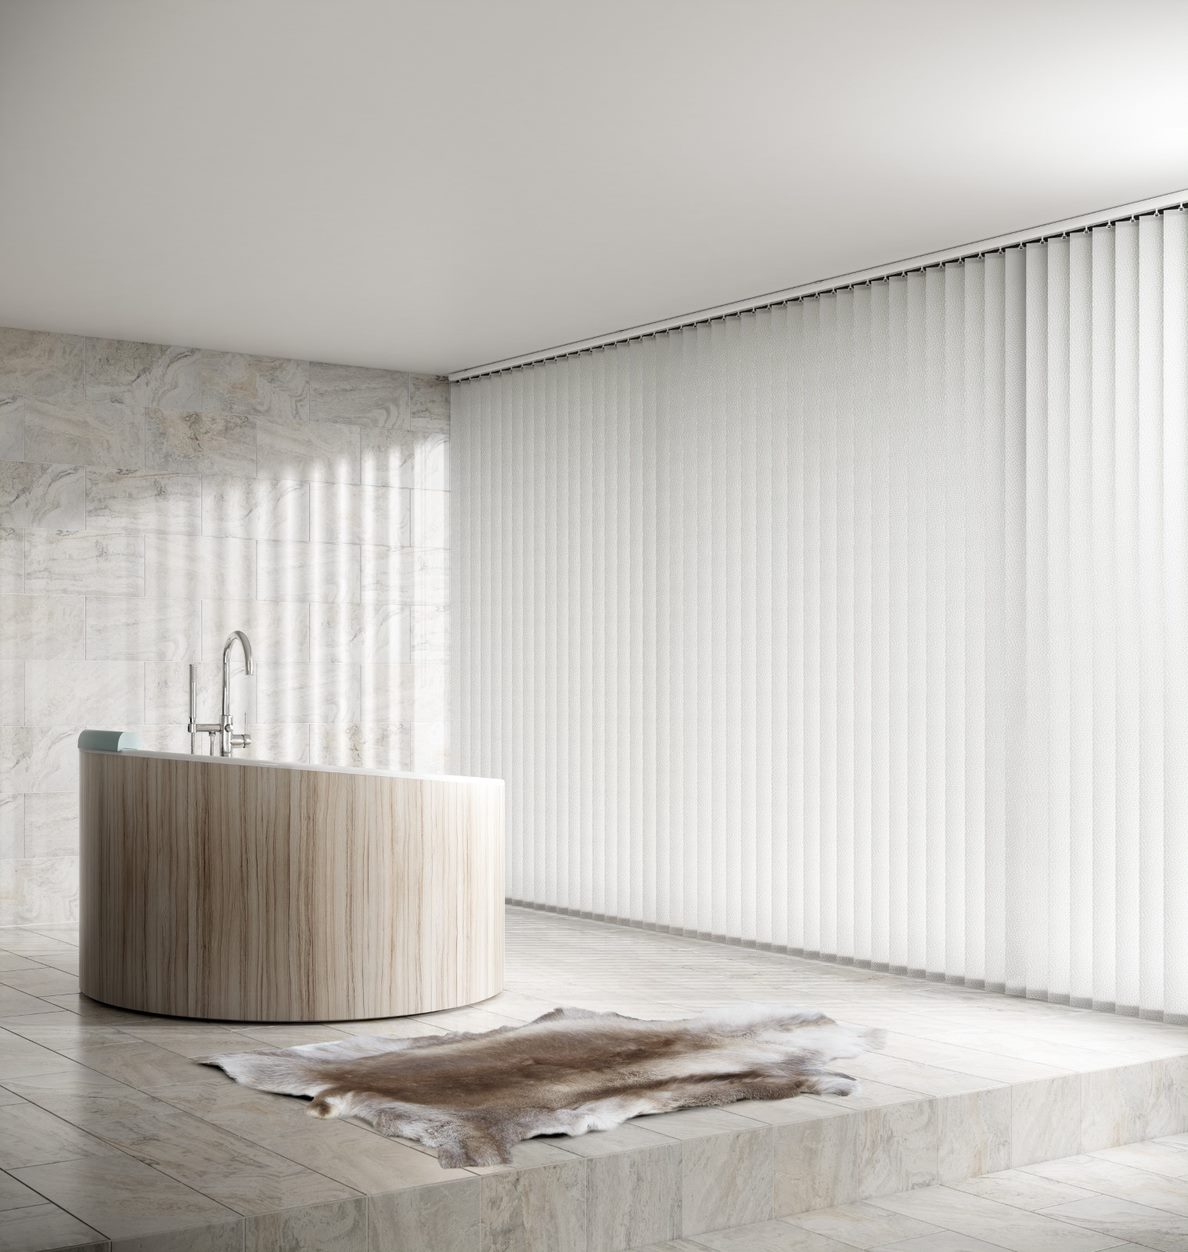 vertical blinds hull, venetian blinds hull, blind slats online